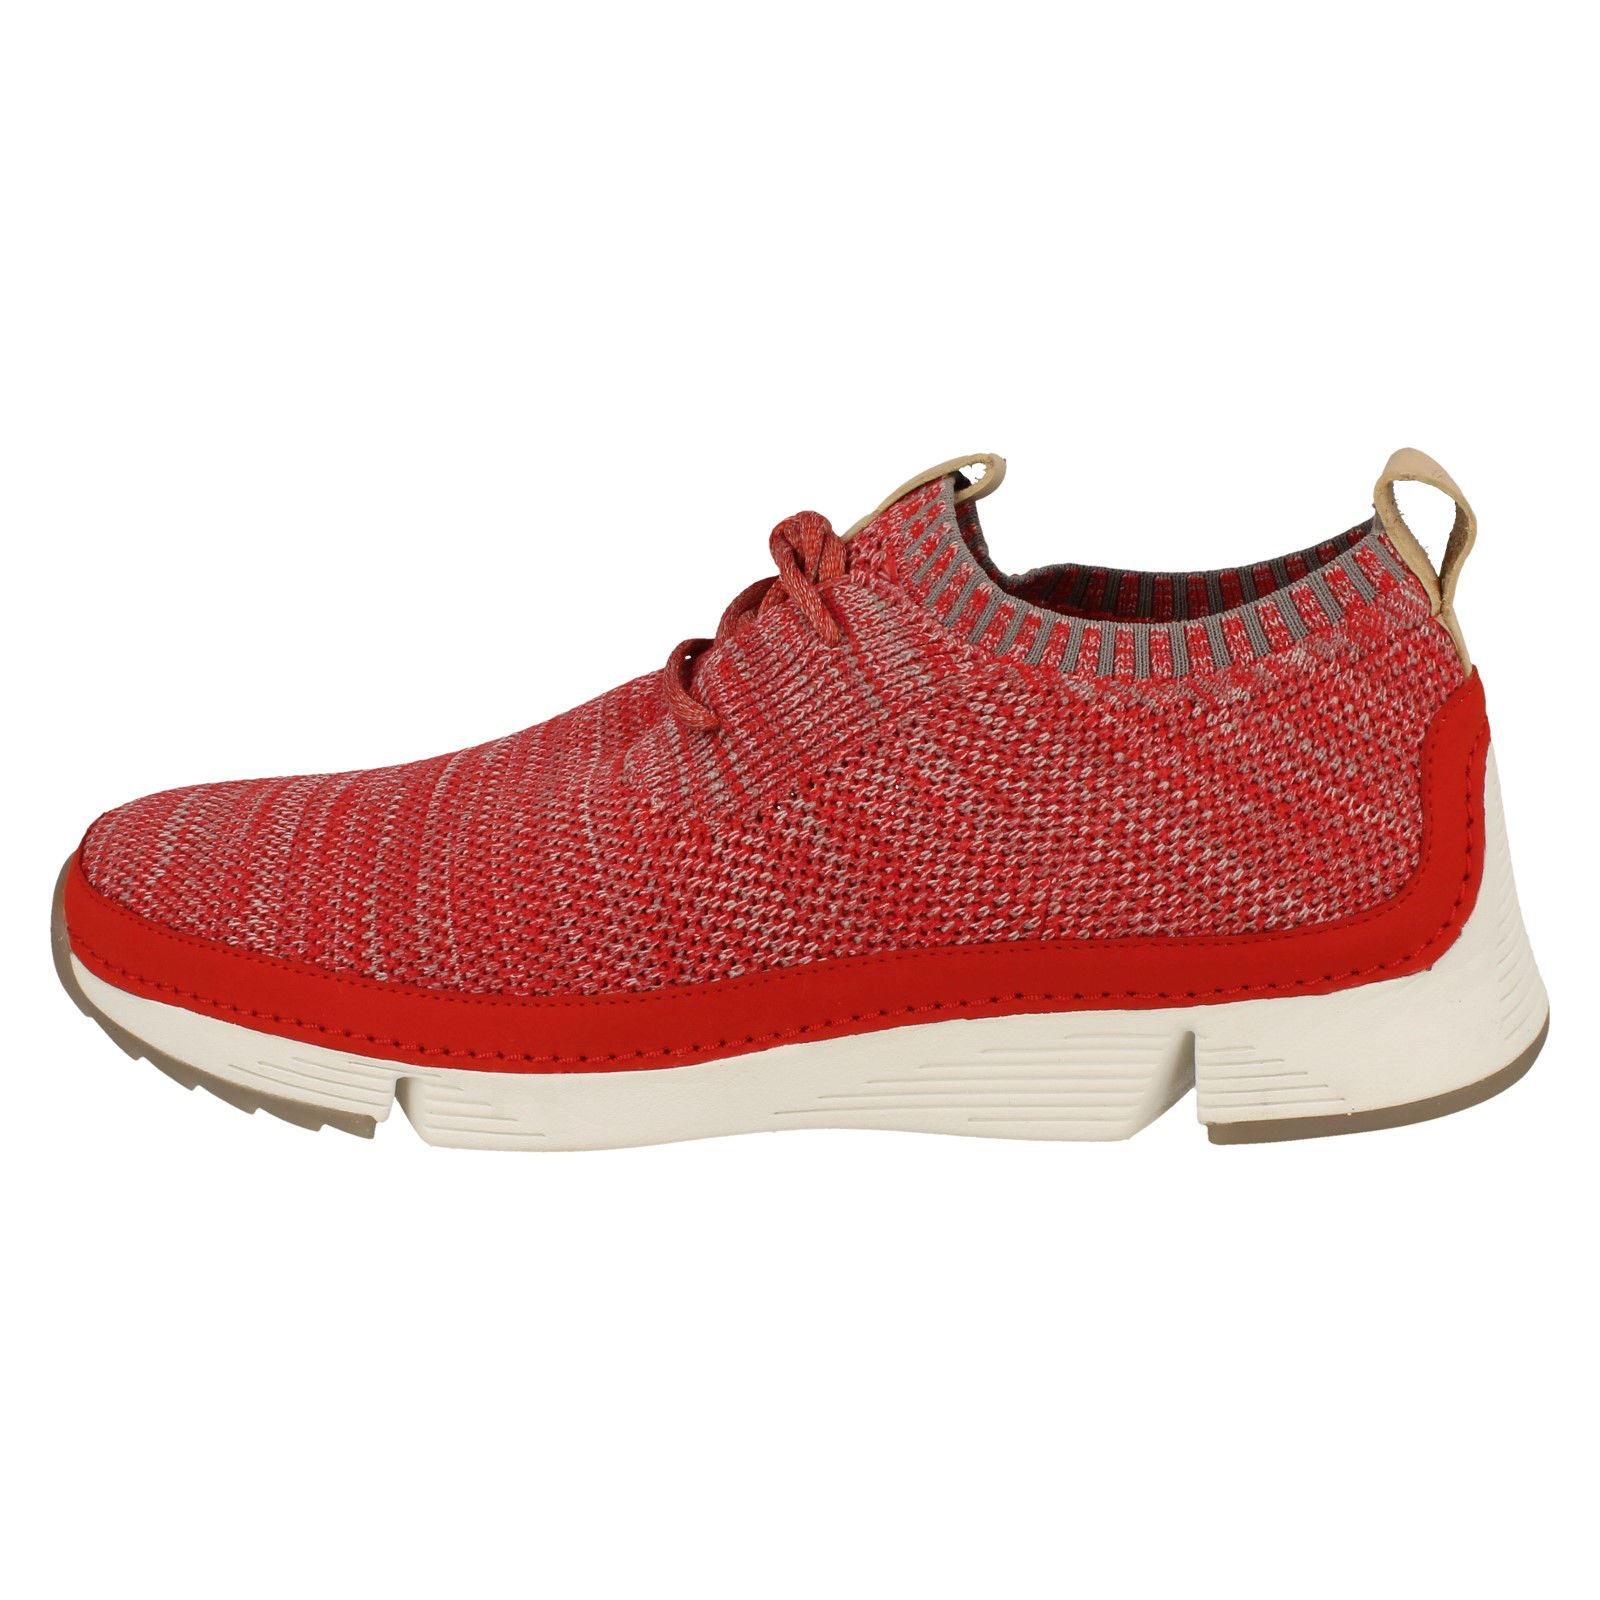 Mens-Clarks-Casual-Lace-Up-Trainers-Tri-Native thumbnail 16